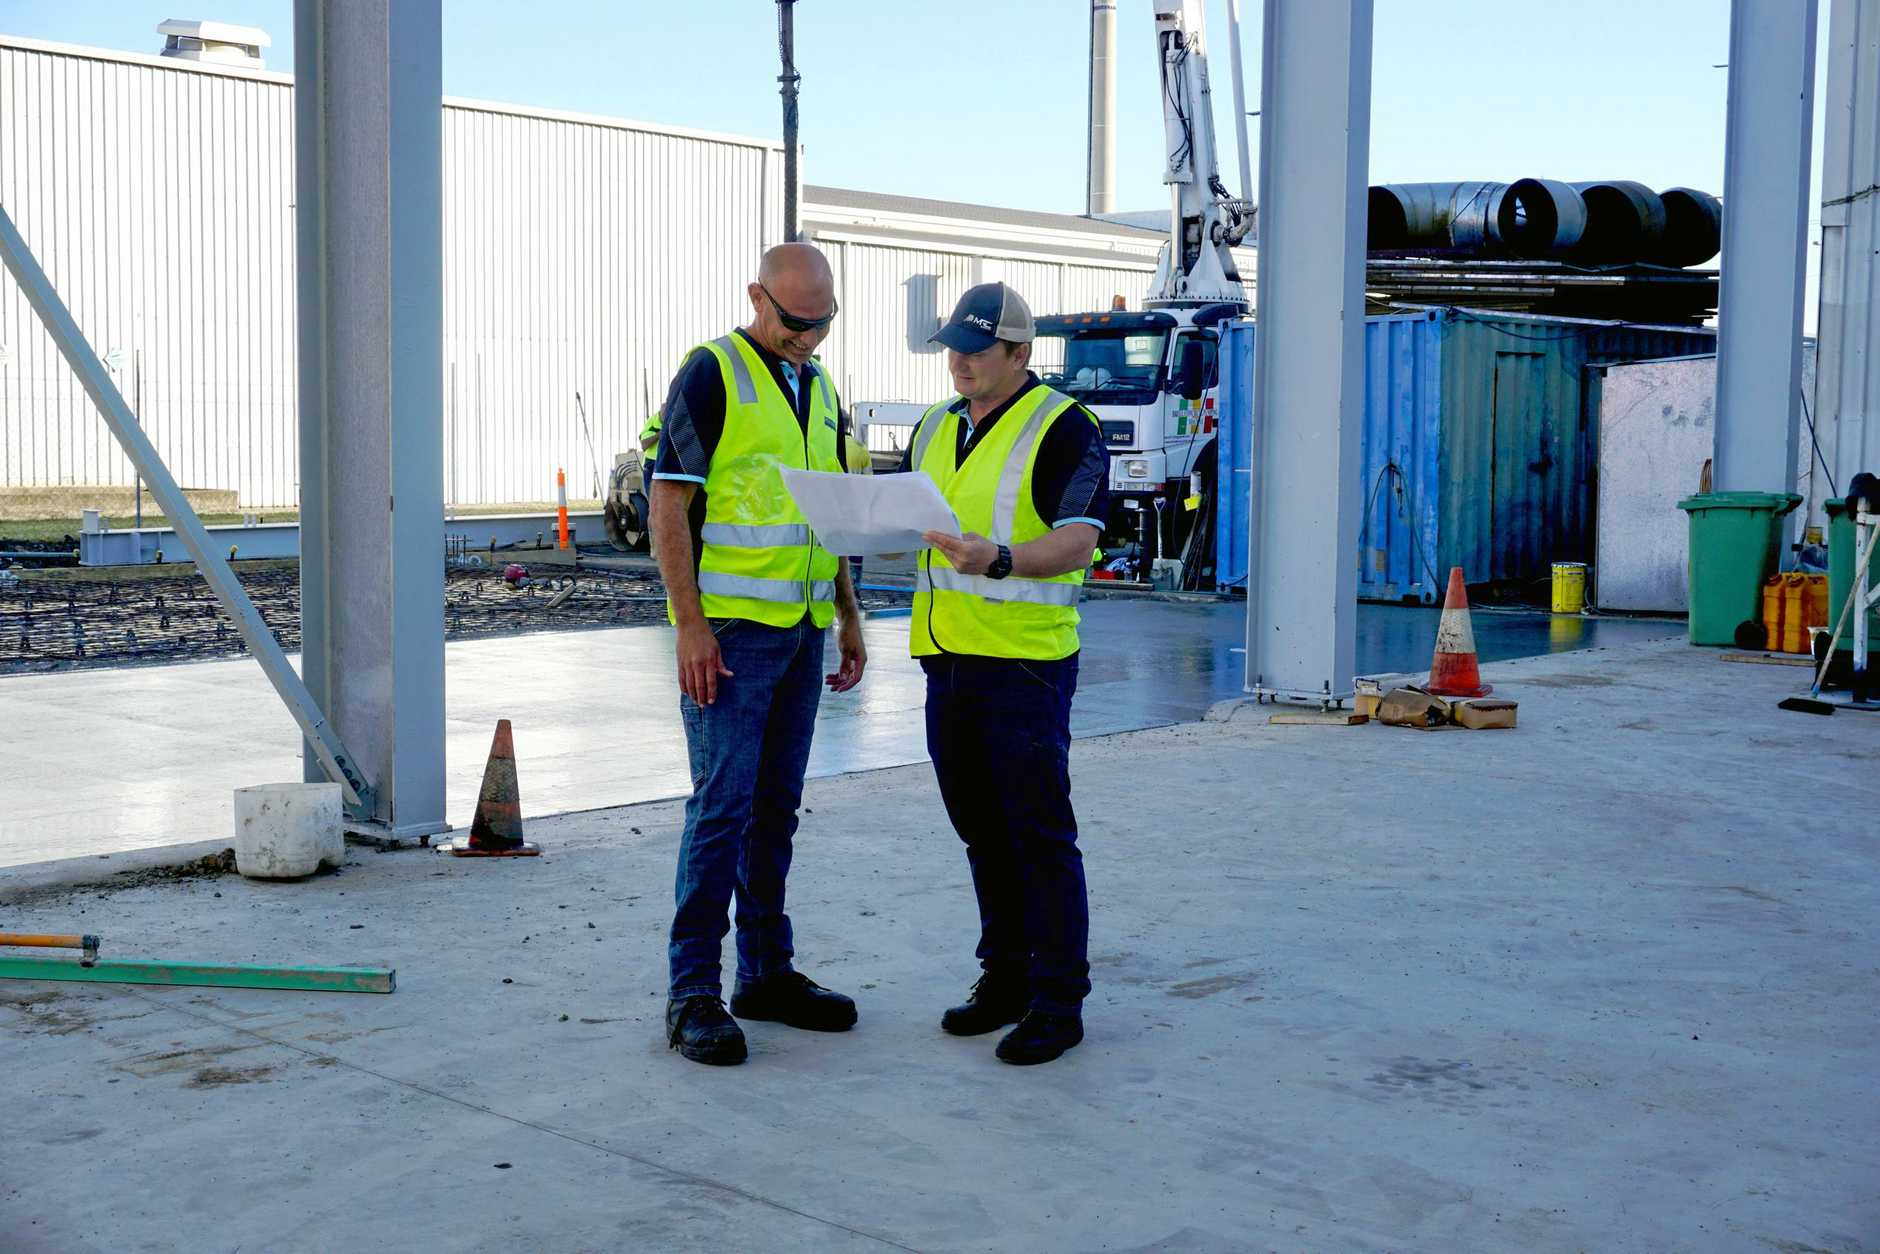 MRC Australia Group Operations Manager Anthony Borg, left, and Managing Director Scott Thorburn review the progress of the million-dollar expansion plans for the Boundary Road premises.